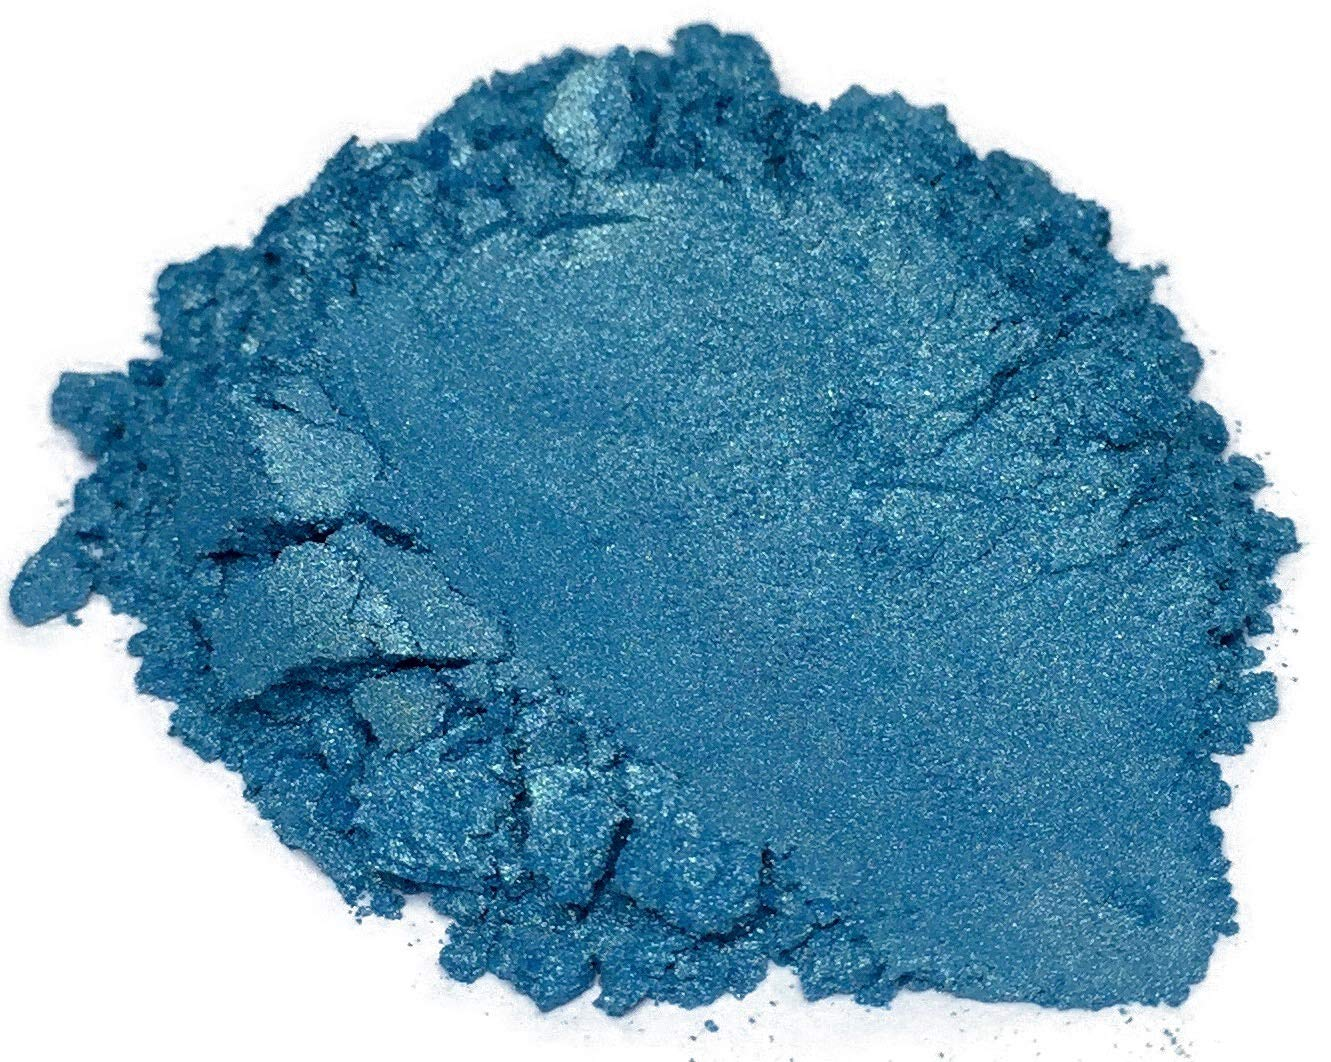 462g/16.5oz (Bulk Pack)''Bora Bora Blue'' Mica Powder Pigment 11(1.5oz/42g Containers) Black Diamond Pigments by BLACK DIAMOND PIGMENTS